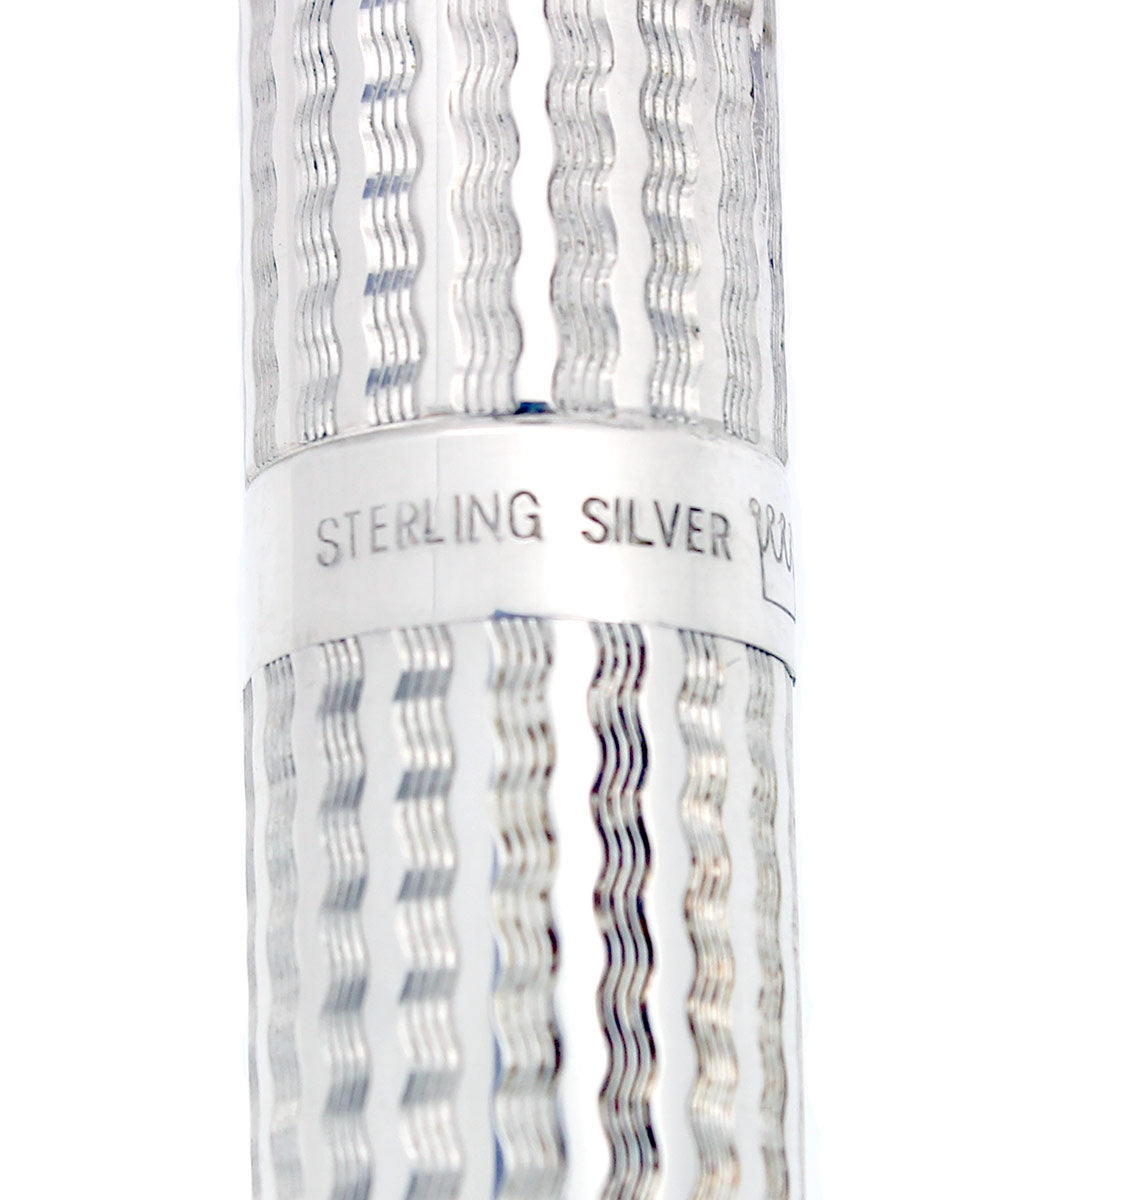 SHEAFFER TARGA CP1 LIMITED EDITION 220/250 STERLING SILVER FOUNTAIN PEN MINT NOS OFFERED BY ANTIQUE DIGGER